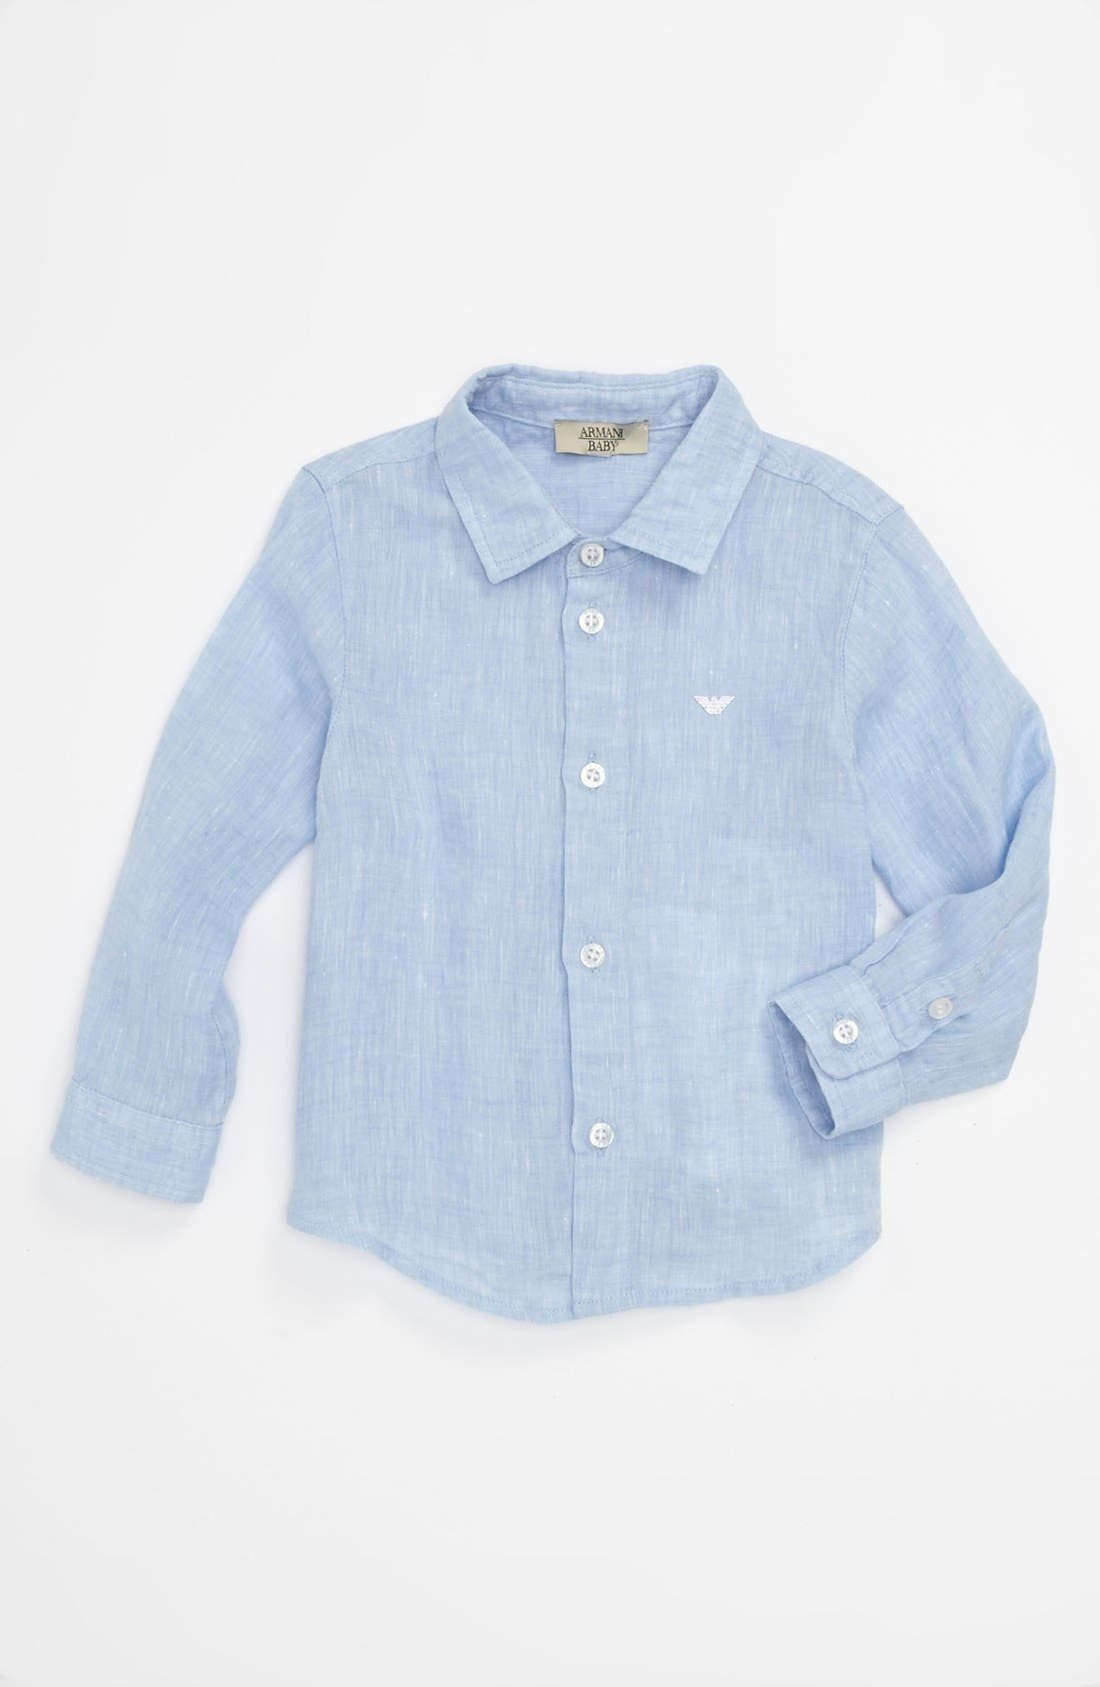 Alternate Image 1 Selected - Armani Junior Chambray Sport Shirt (Baby)